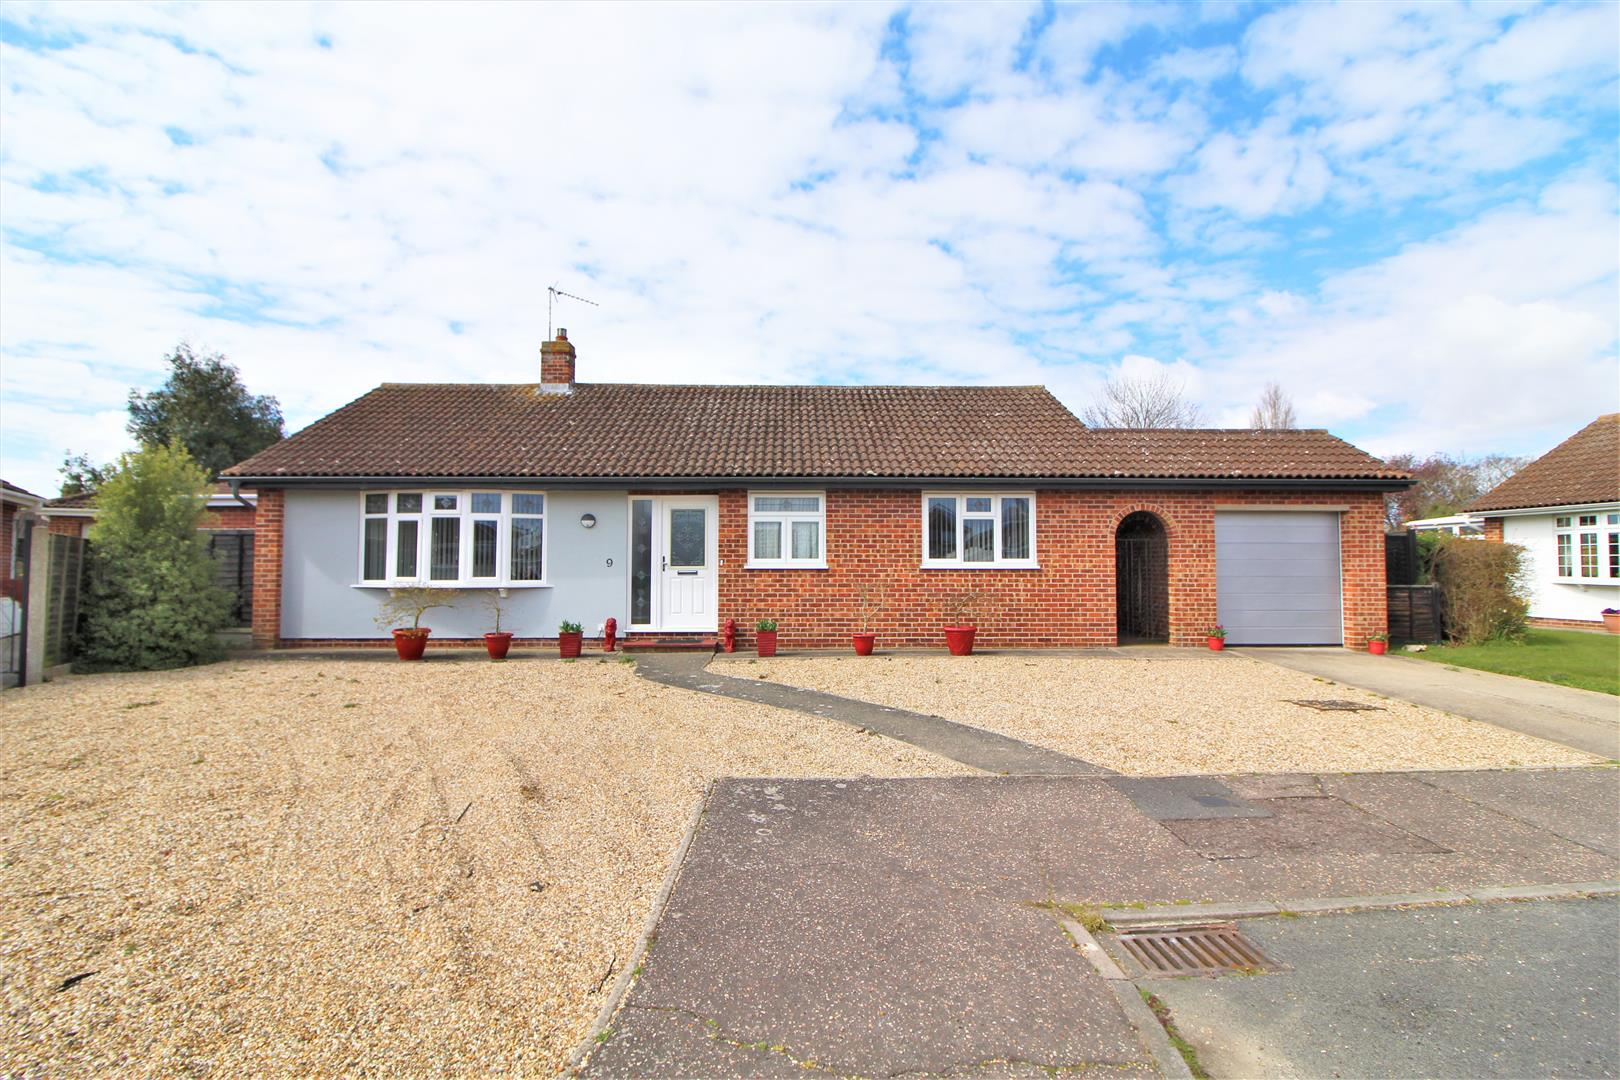 Devereaux Close, Frinton Homelands, Essex, CO14 8TY